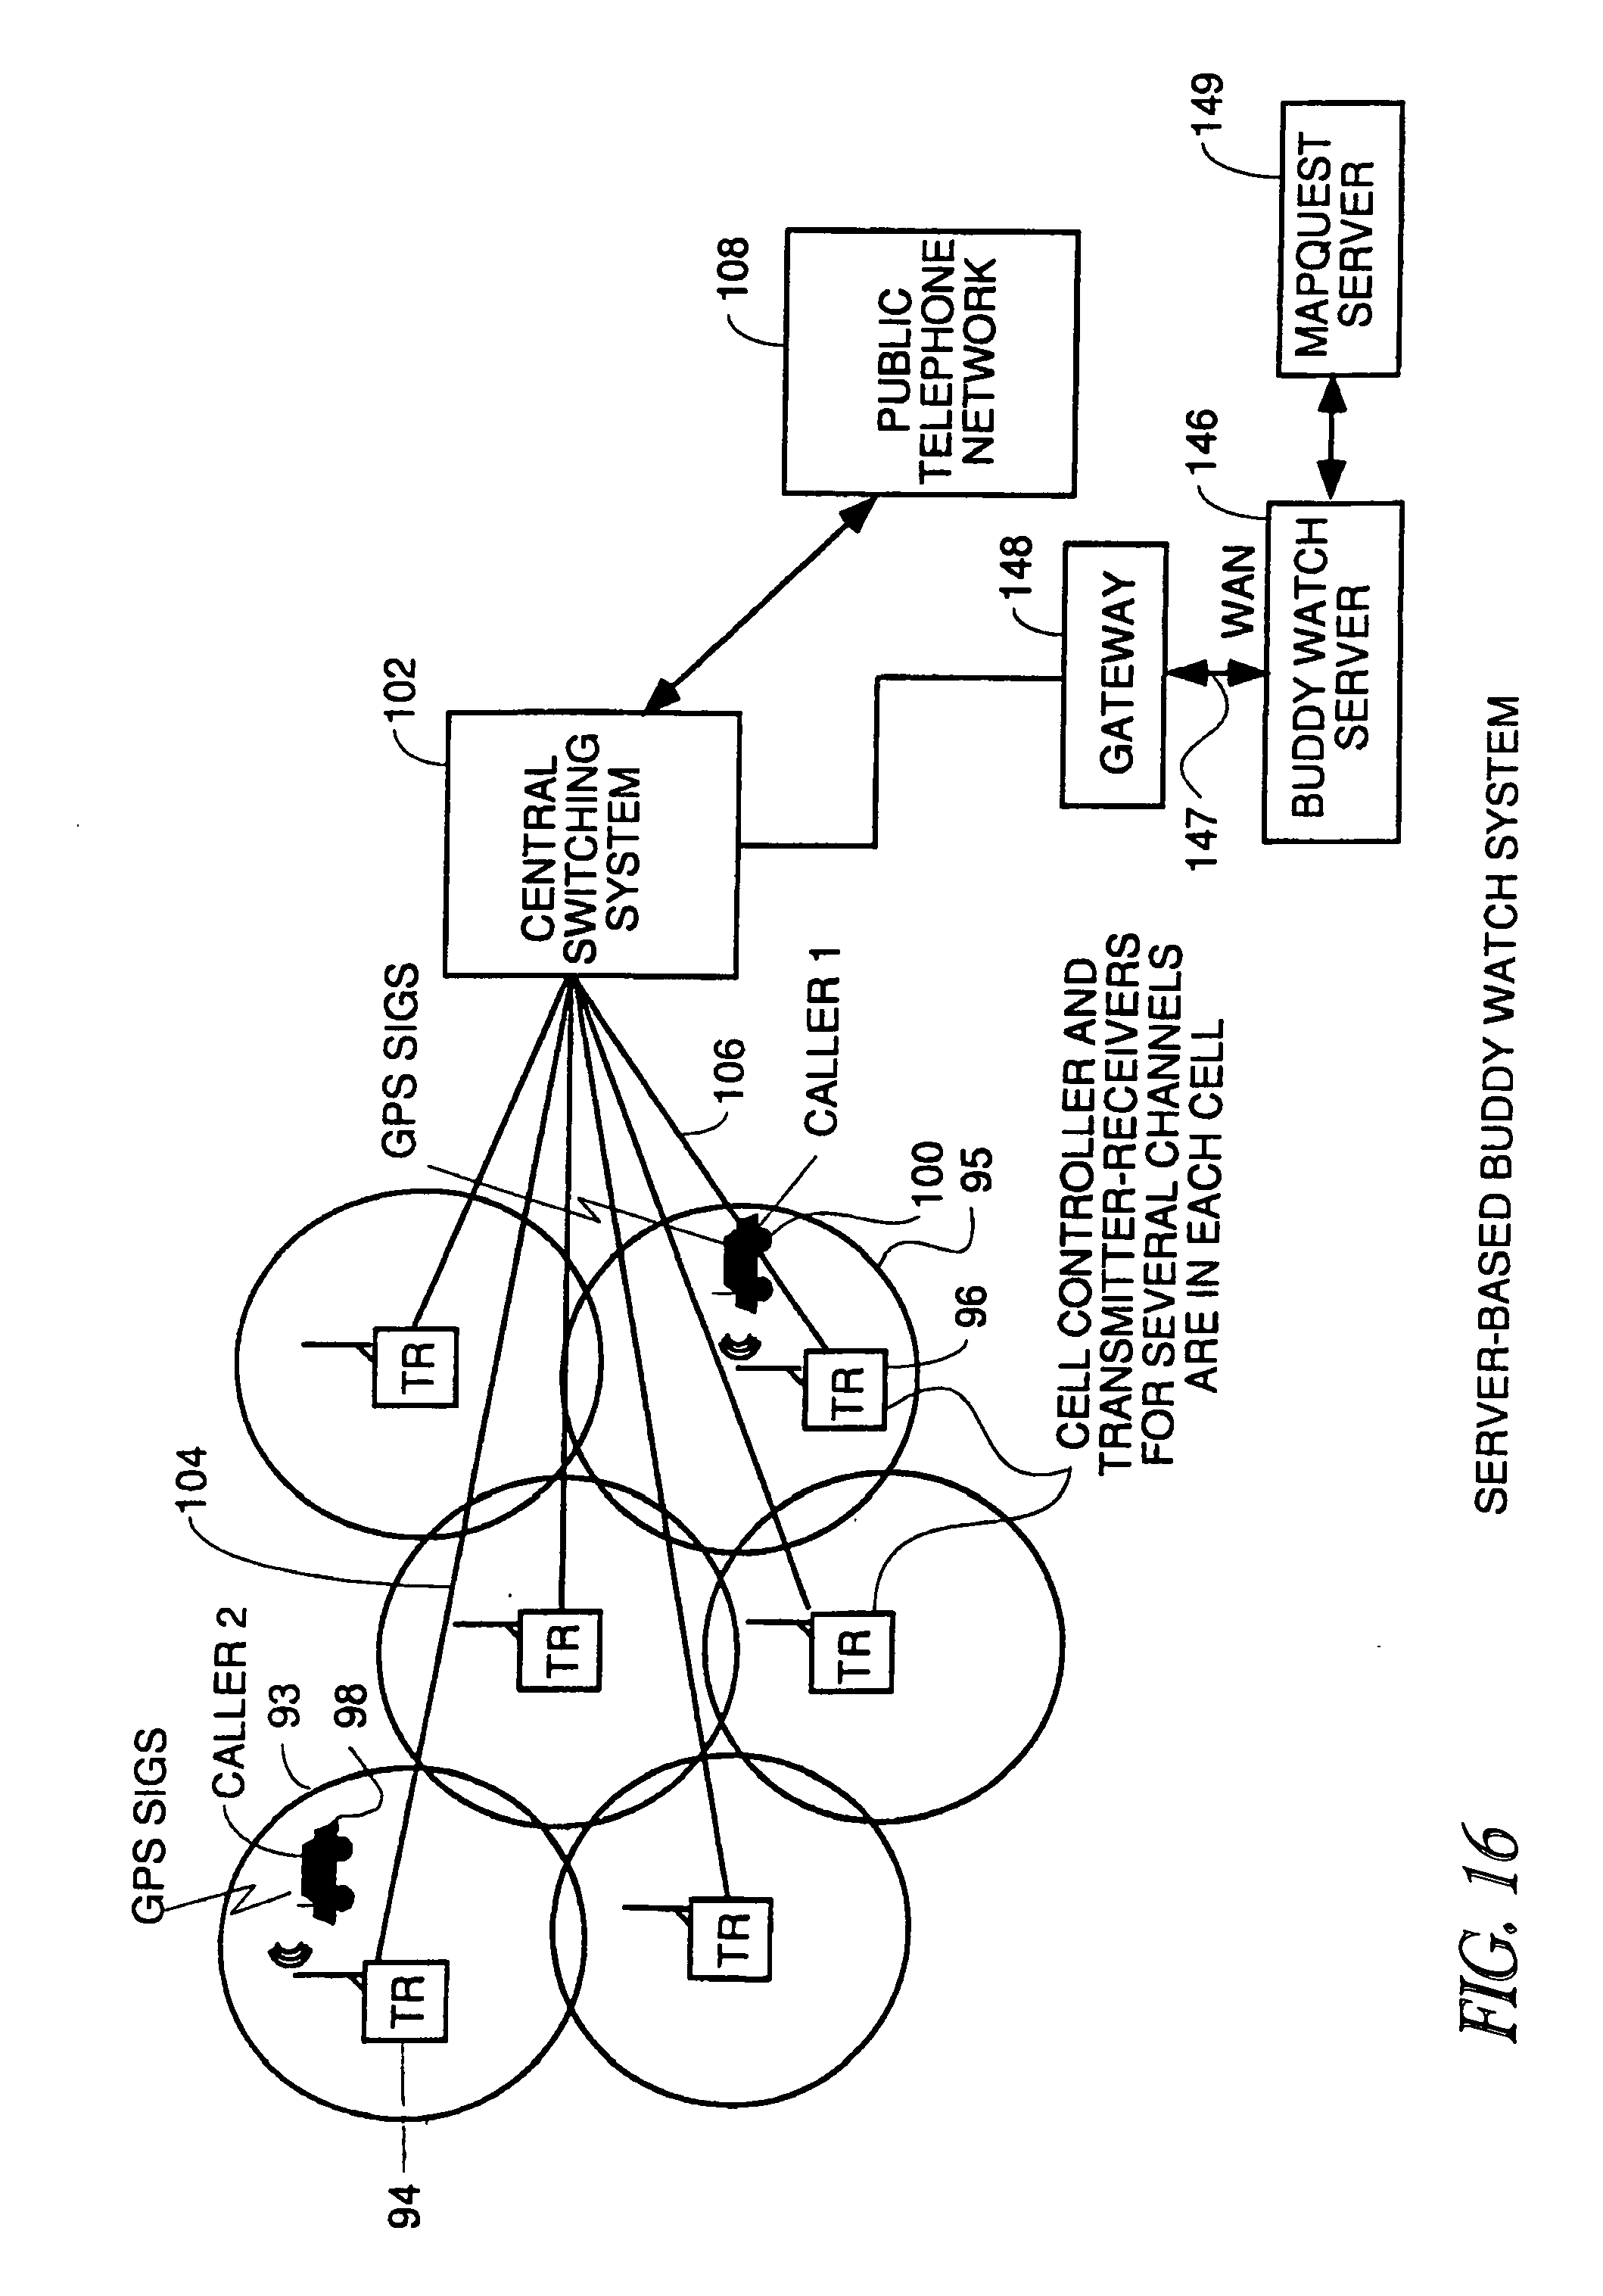 Us20080227473a1 location sharing and tracking using mobile phones us20080227473a1 location sharing and tracking using mobile phones or other wireless devices google patents fandeluxe Images